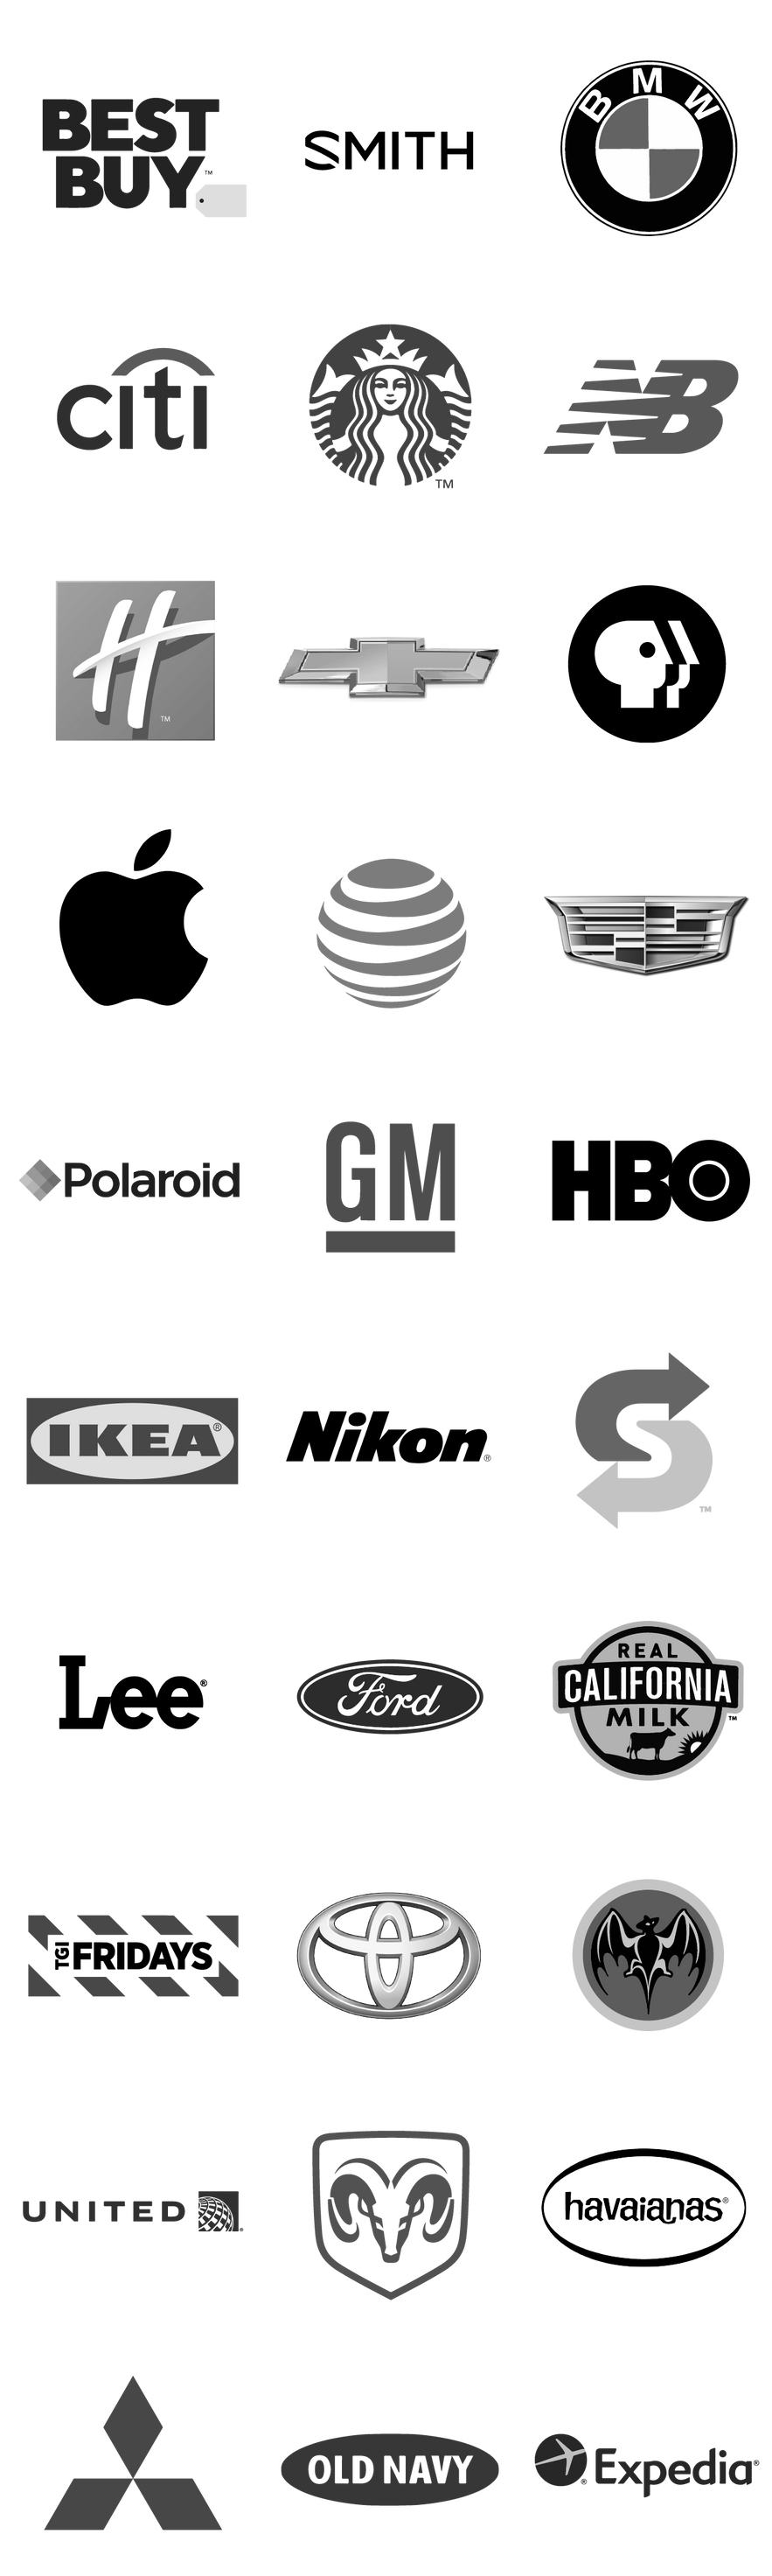 We've collectively produced thousands of commercials for great brands in every category, for every budget and executional need.